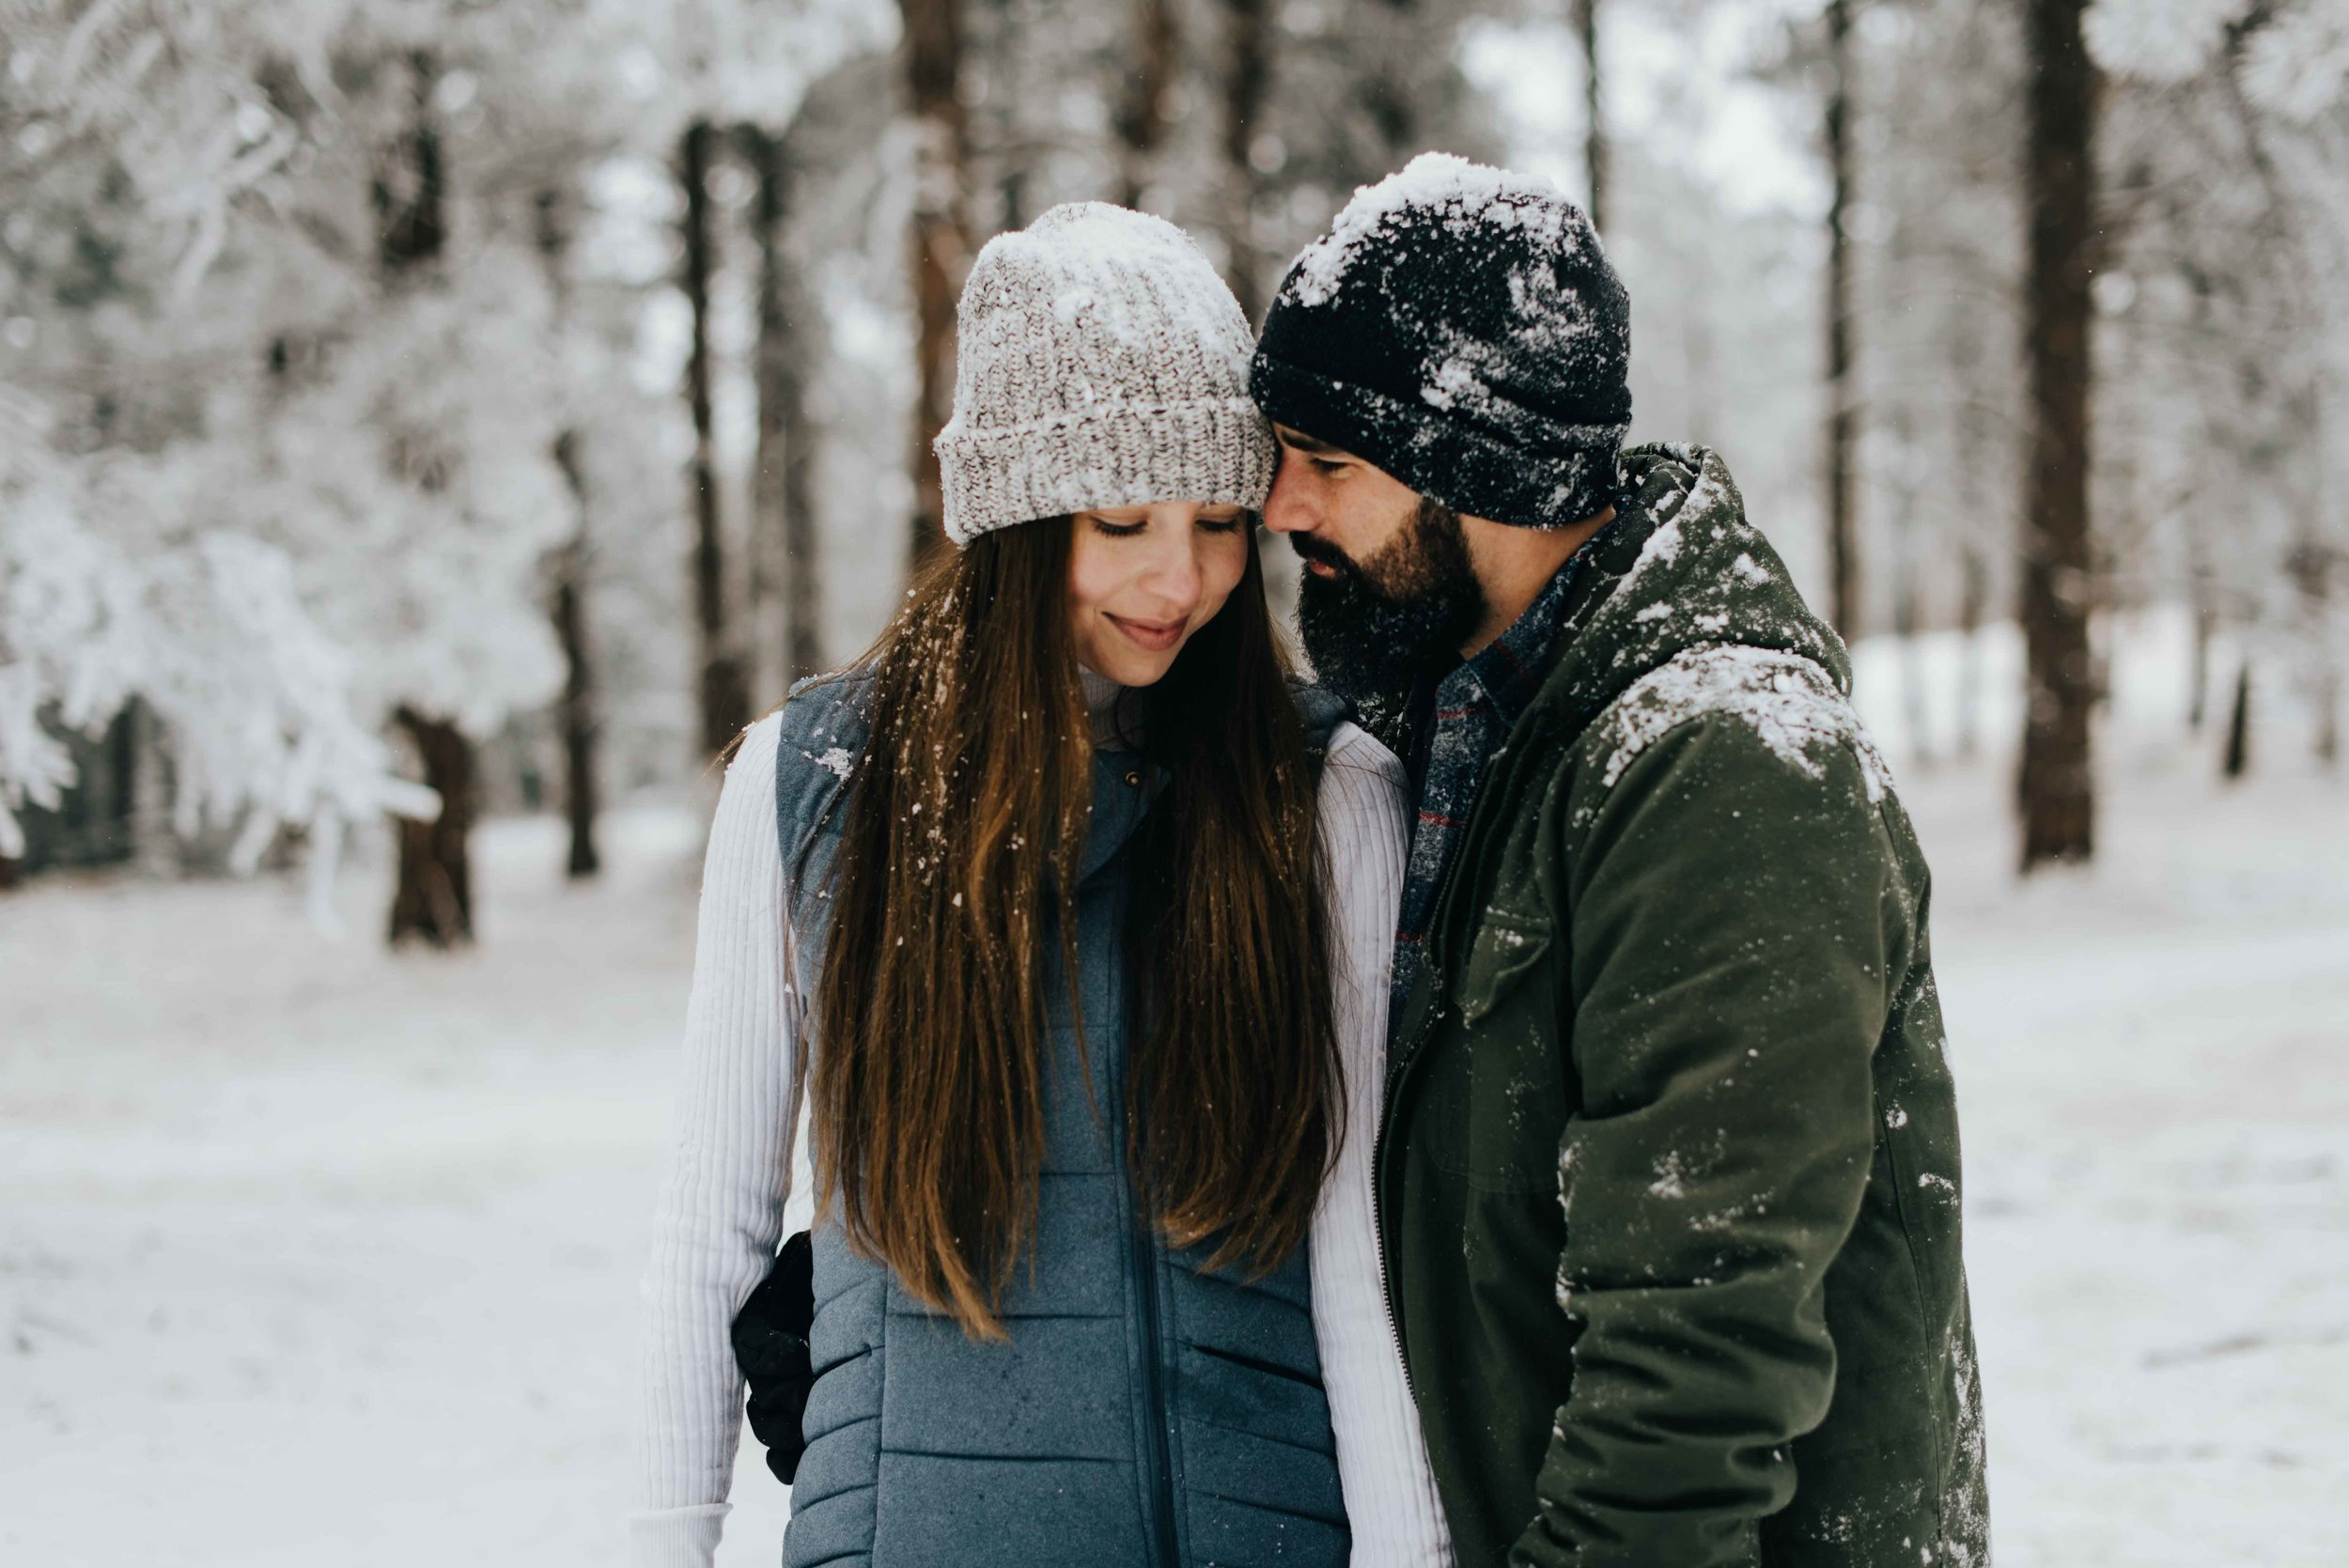 Nik holding Tani during their snowy engagement session.